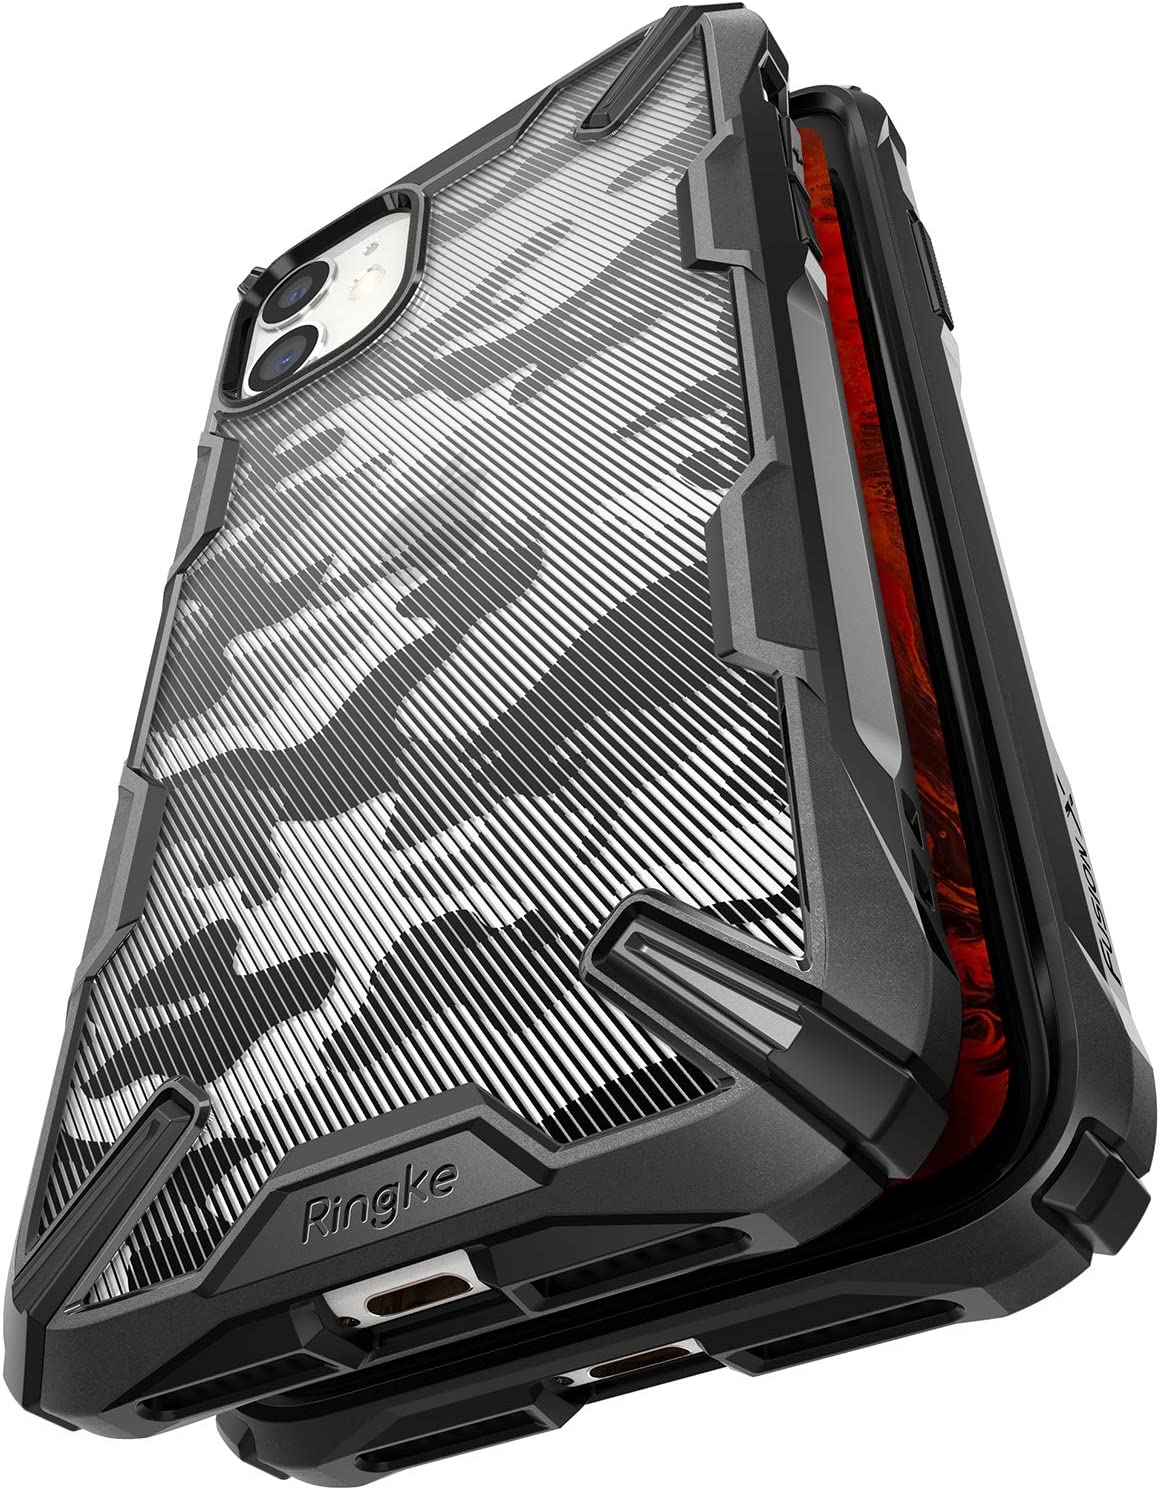 Ringke Fusion X Design Case Made for iPhone 11 (2019) Semi-Transparent 3D Pattern Textured with Military Grade Drop Protection Cover - Camo Black